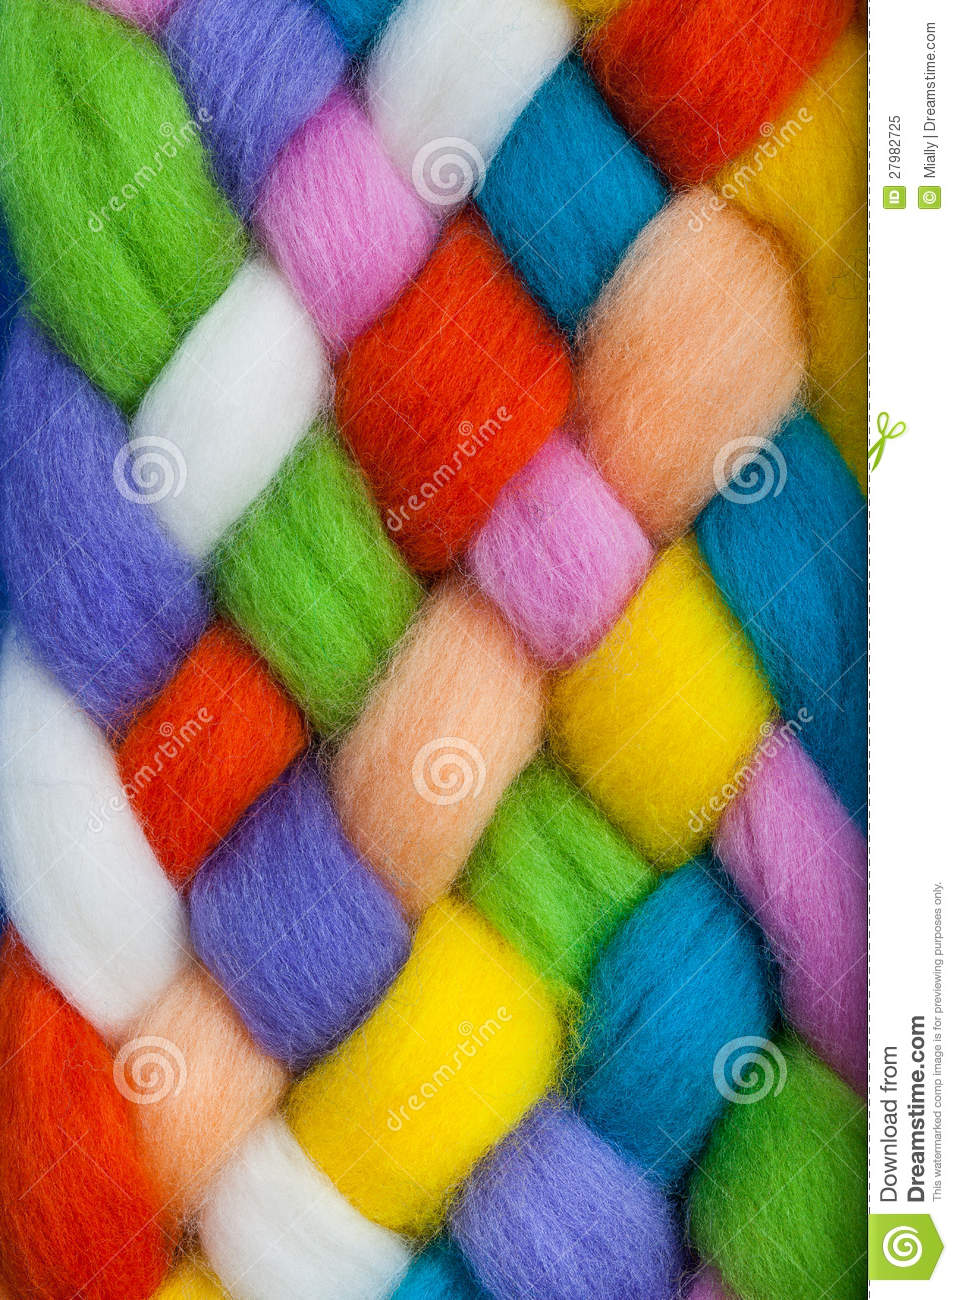 Handcraft Felting Material Stock Image Image Of Natural